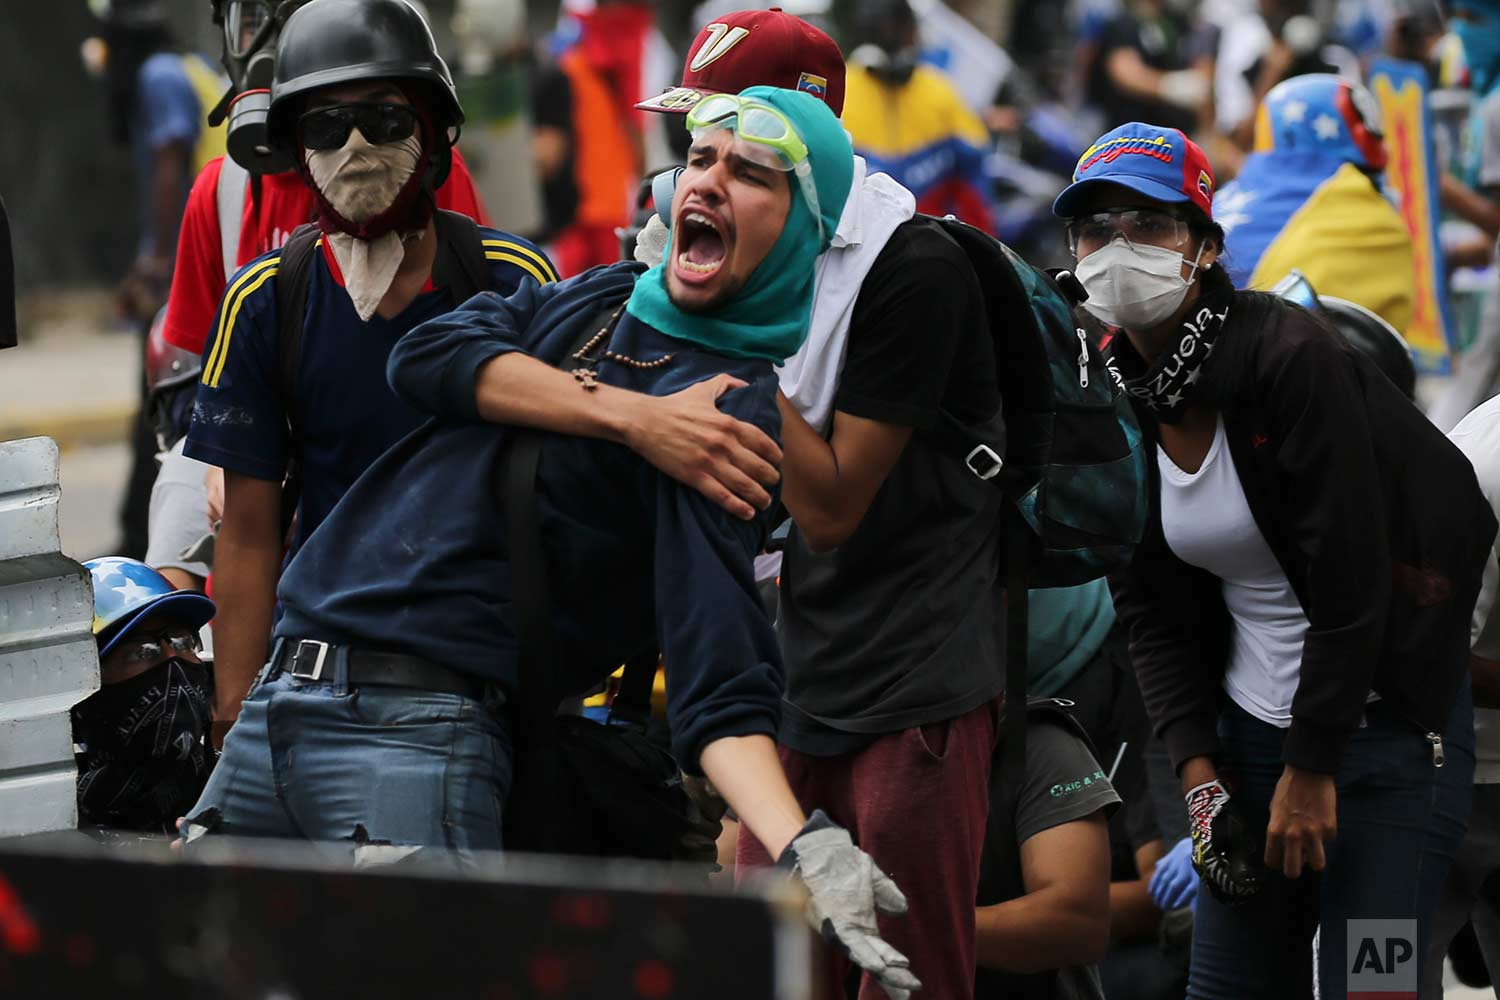 An anti-government protester screams at security forces blocking a march to the Supreme Court to oppose President Nicolas Maduro's plan to rewrite the constitution, in Caracas, Venezuela, Saturday, July 22, 2017. (AP Photo/Fernando Llano)